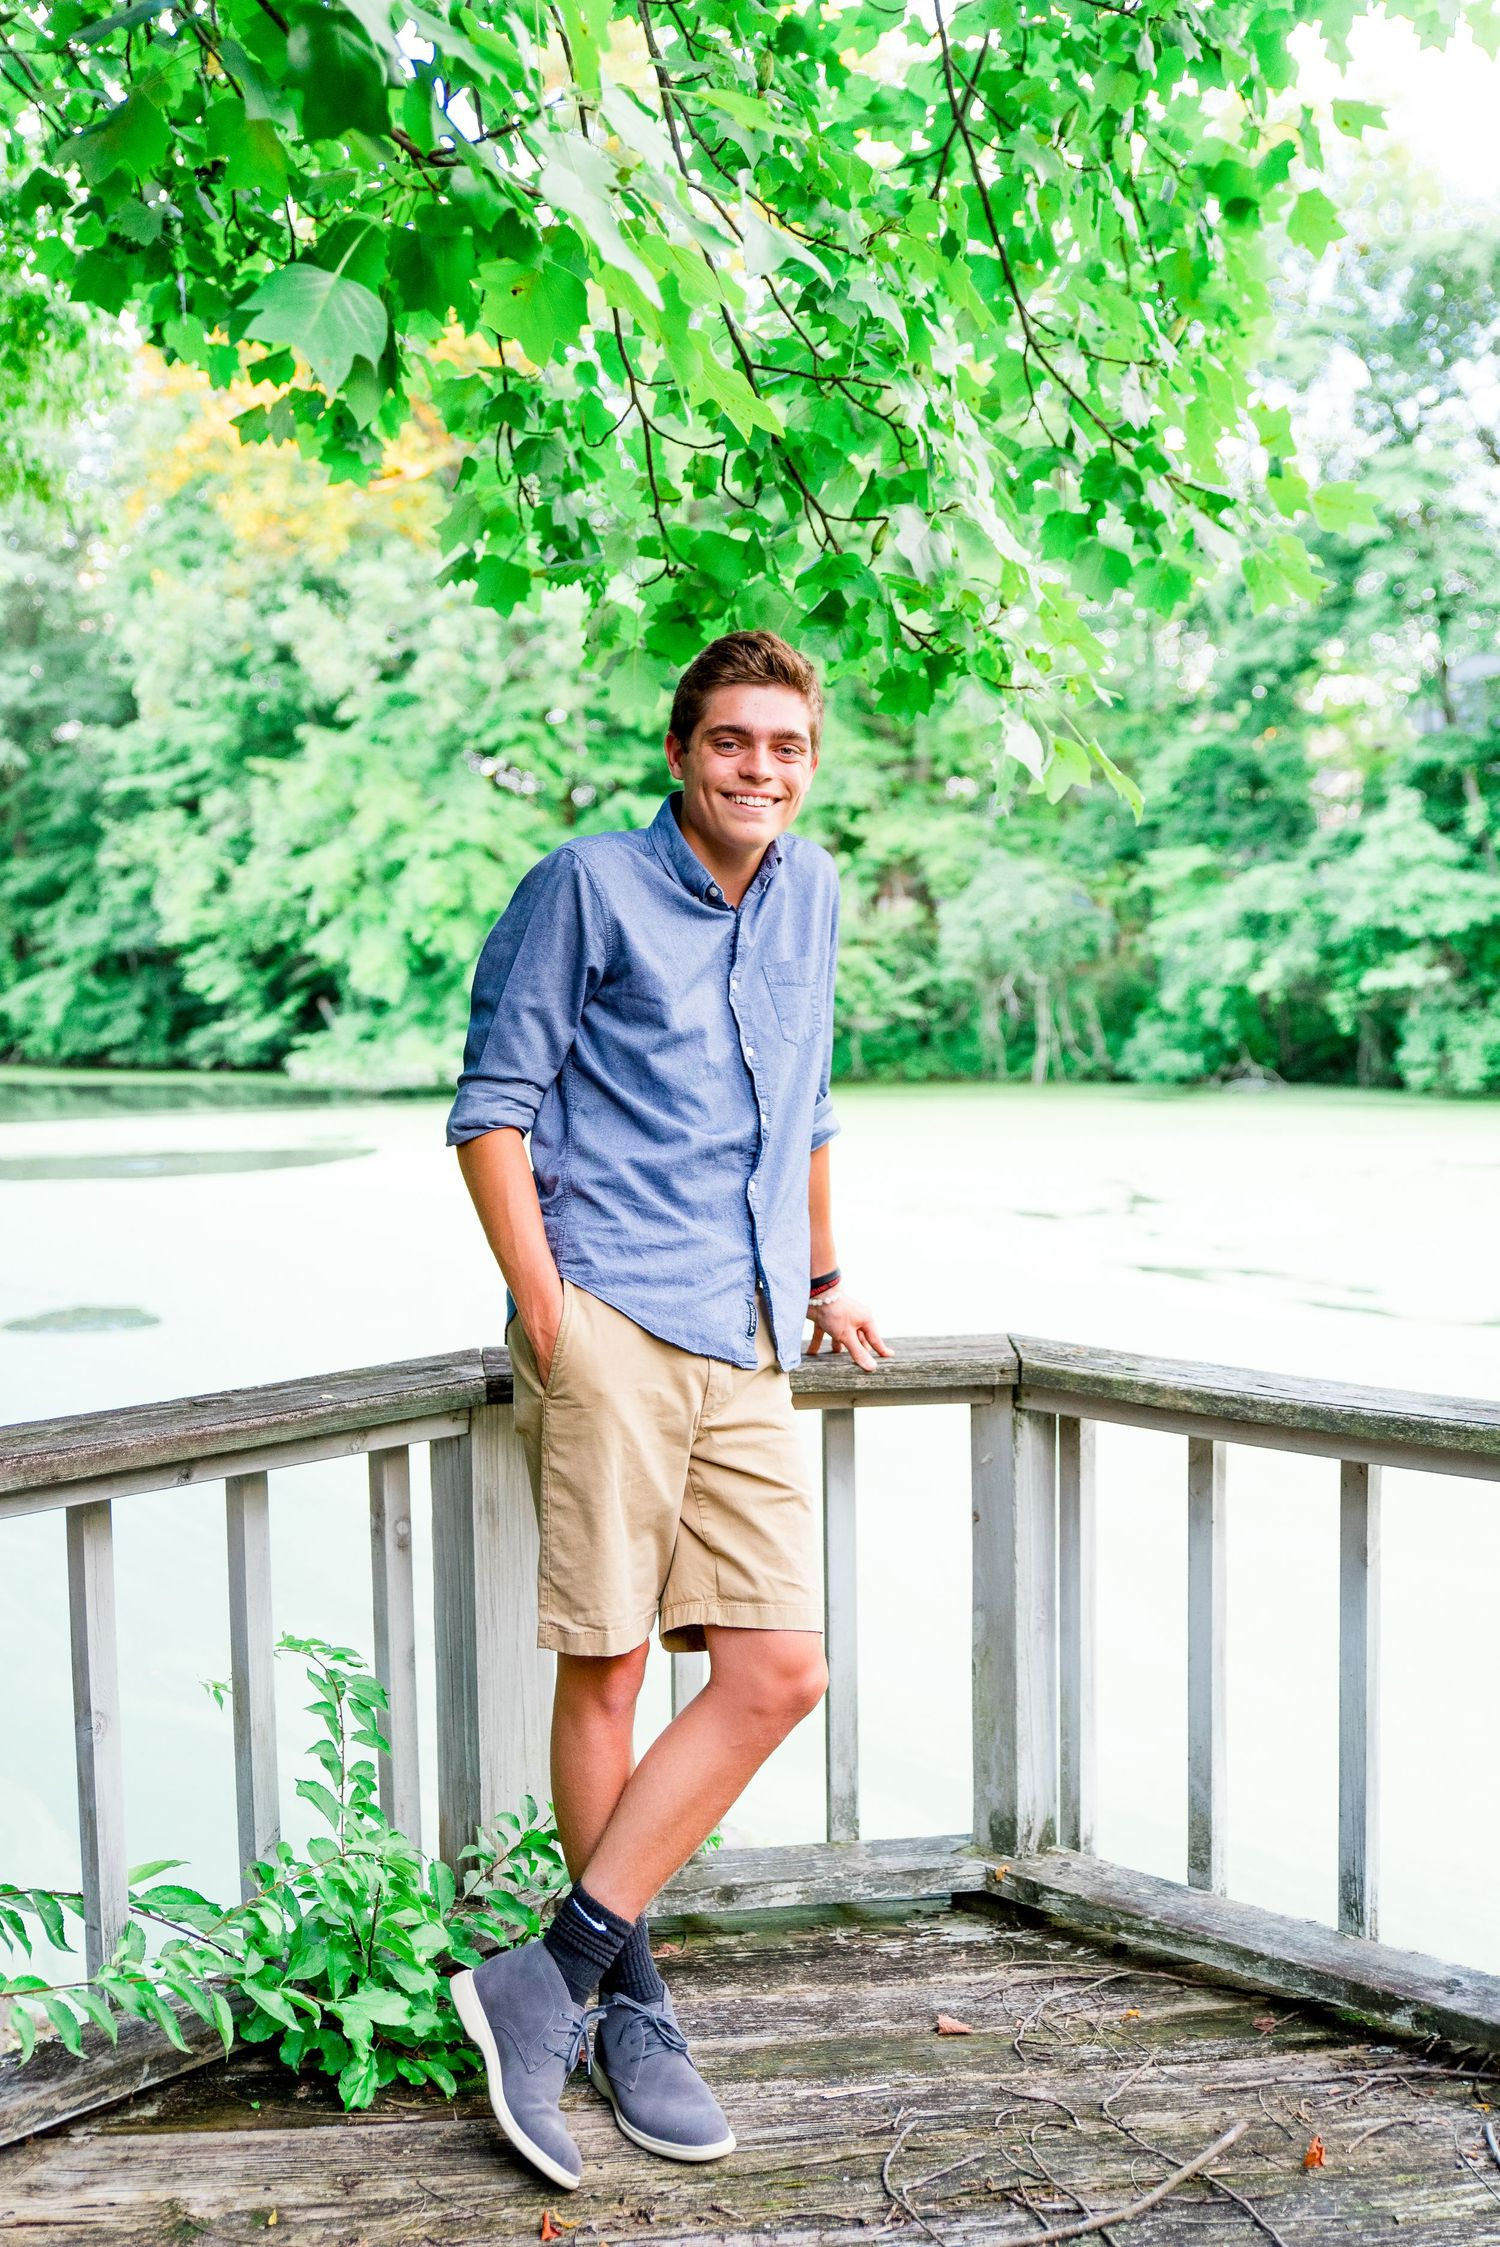 teenage boy, family photos, standing on balcony, pond, outdoors, summer, Cincinnati OH